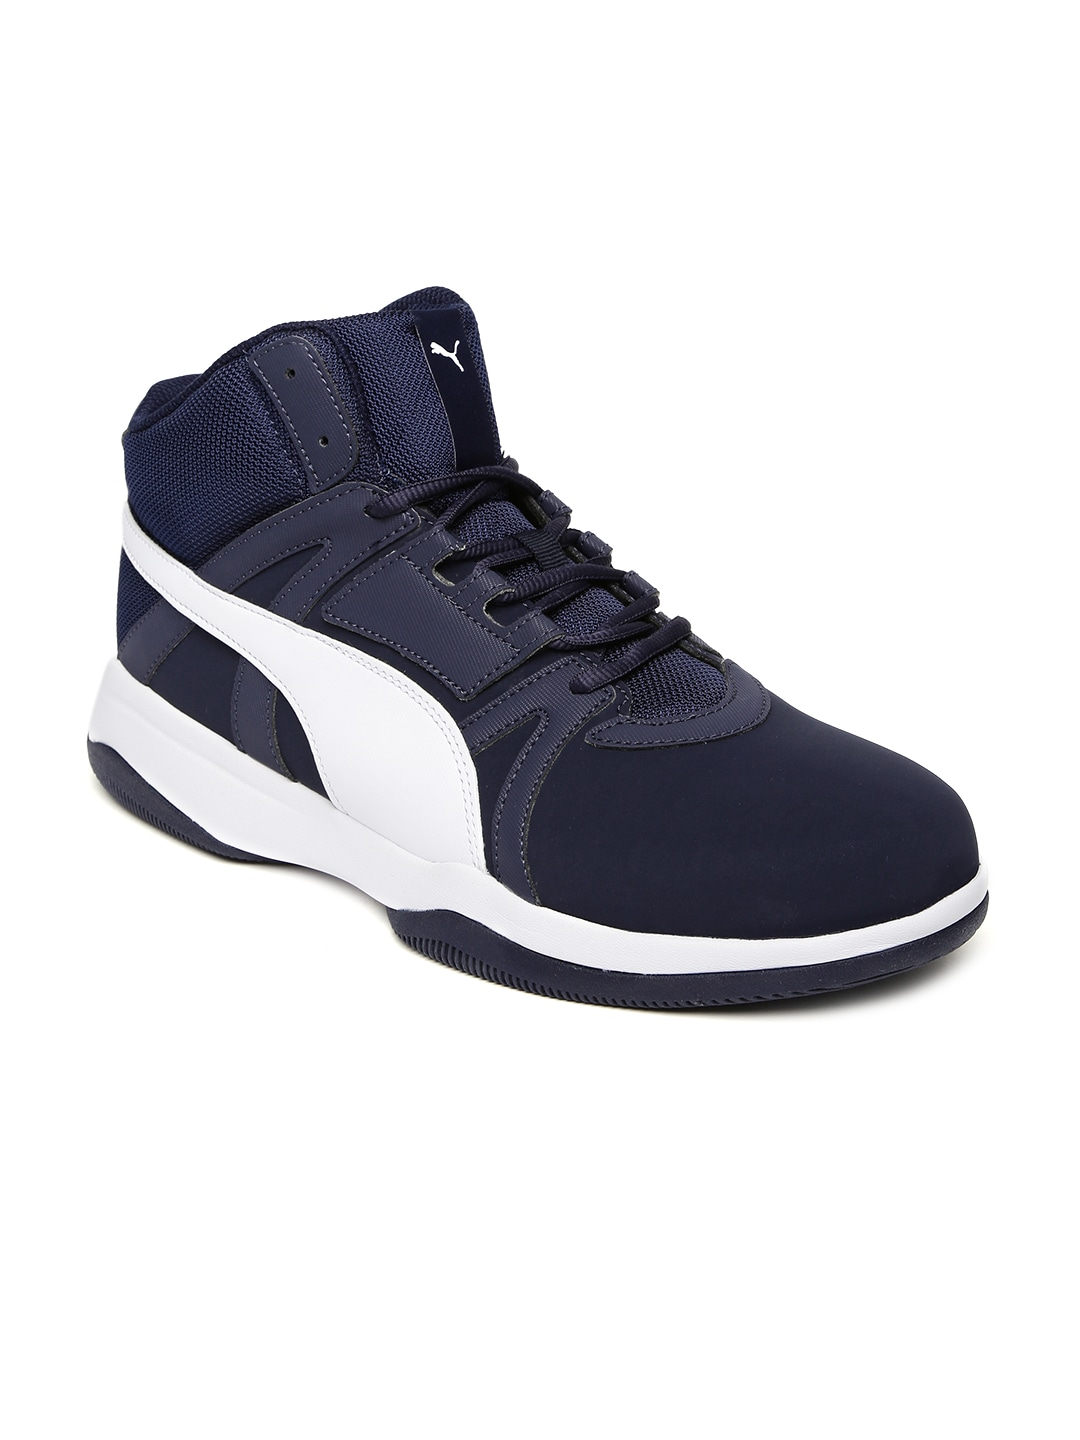 Puma High Top Sneakers - Buy Puma High Top Sneakers online in India ba1e5872c